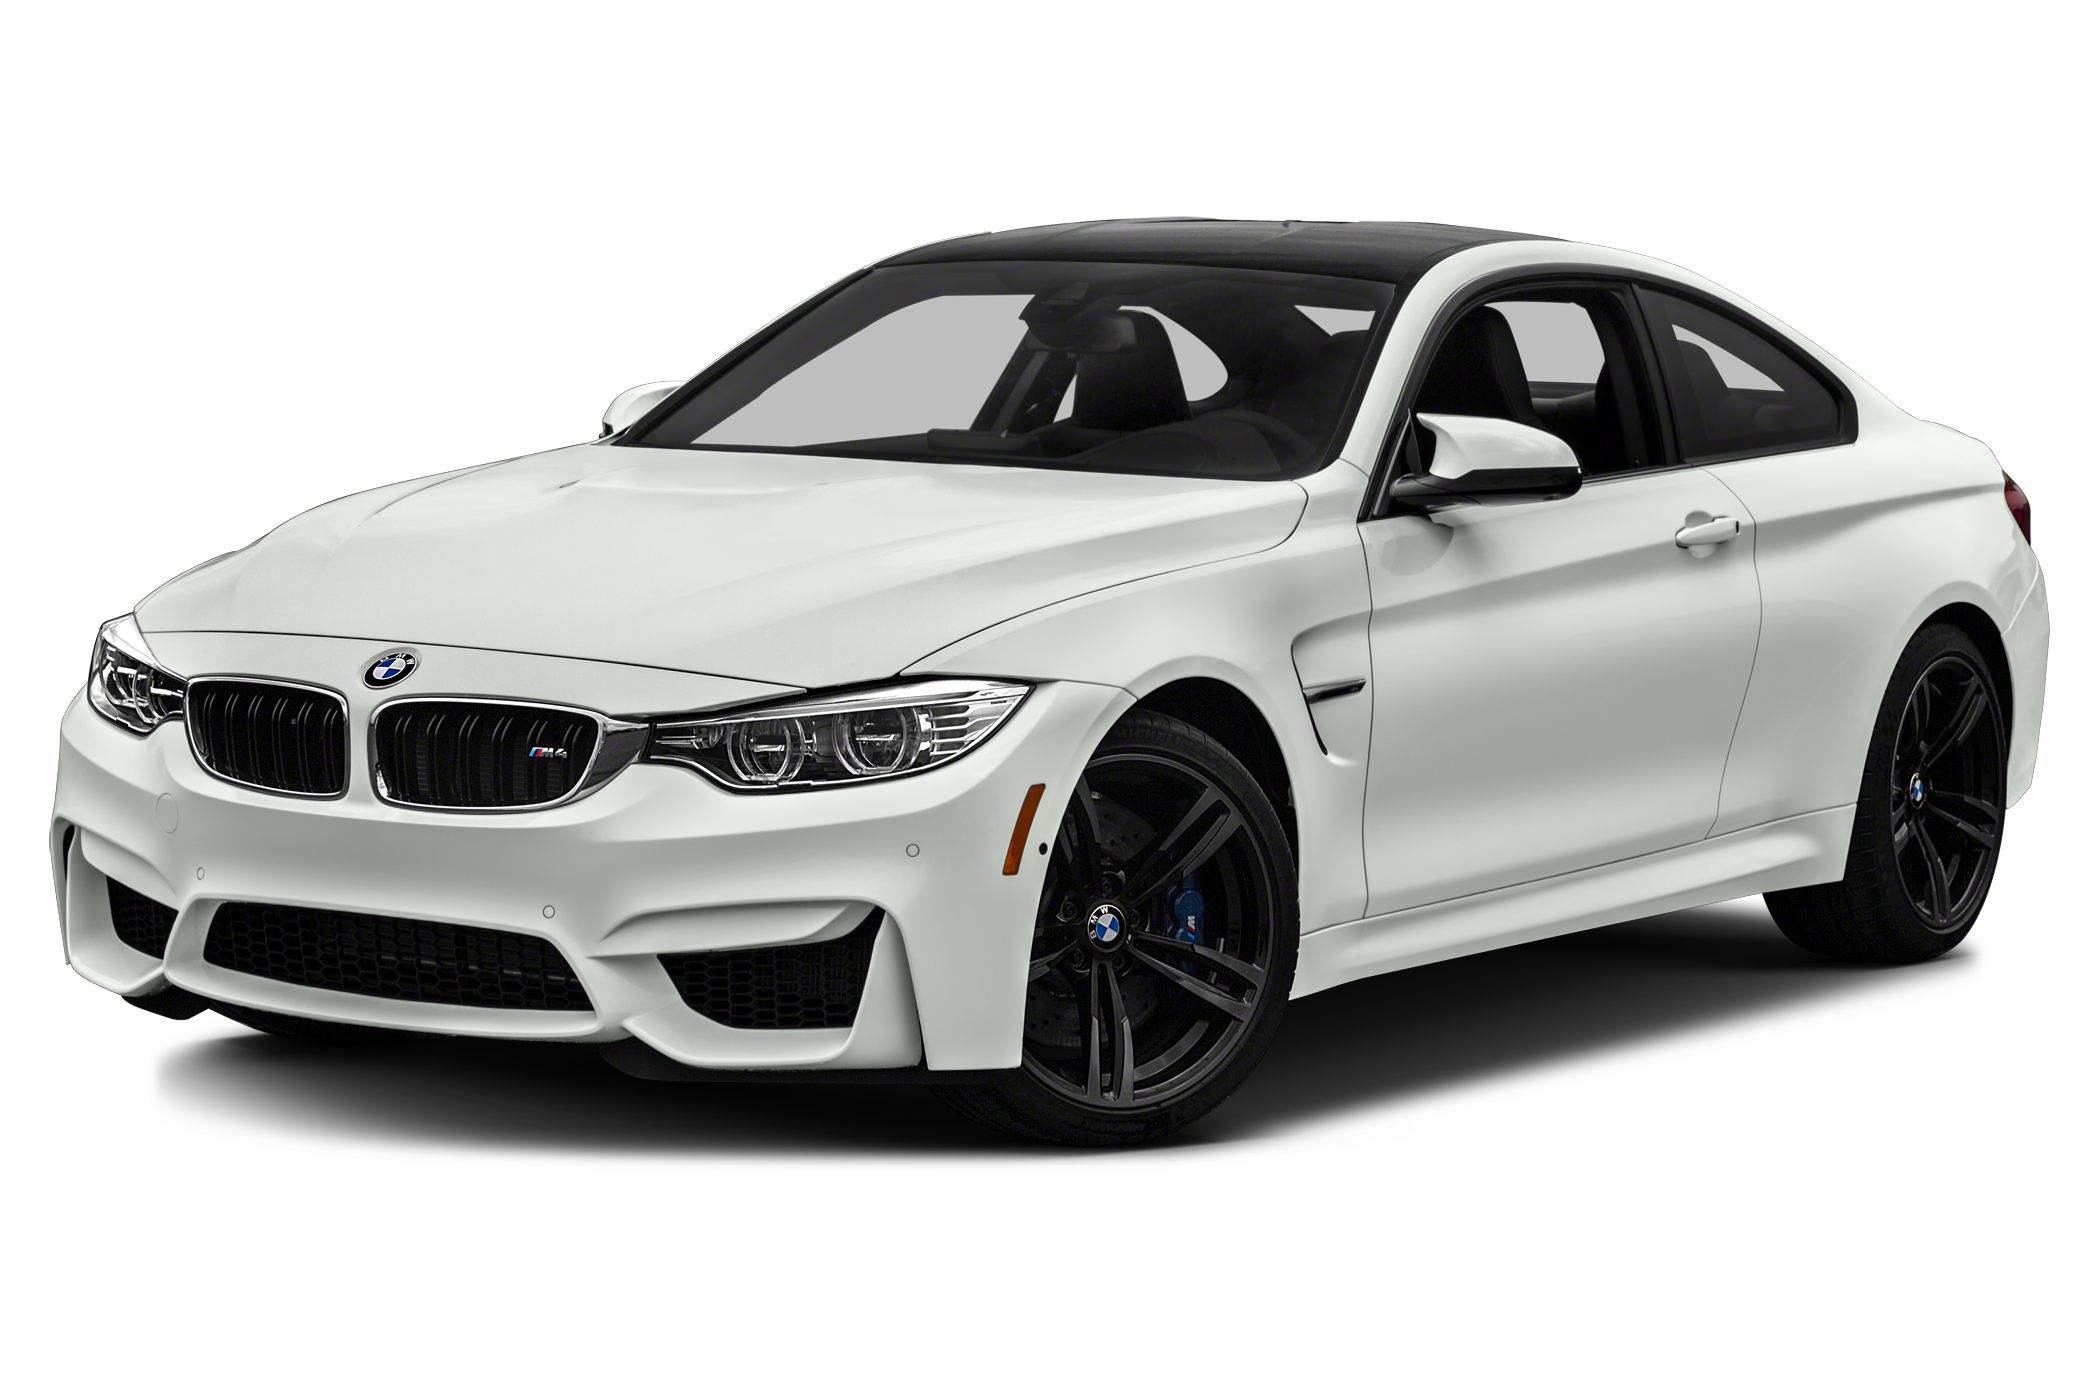 2017 Bmw M4 Base 2dr Rear Wheel Drive Coupe Pricing And Options